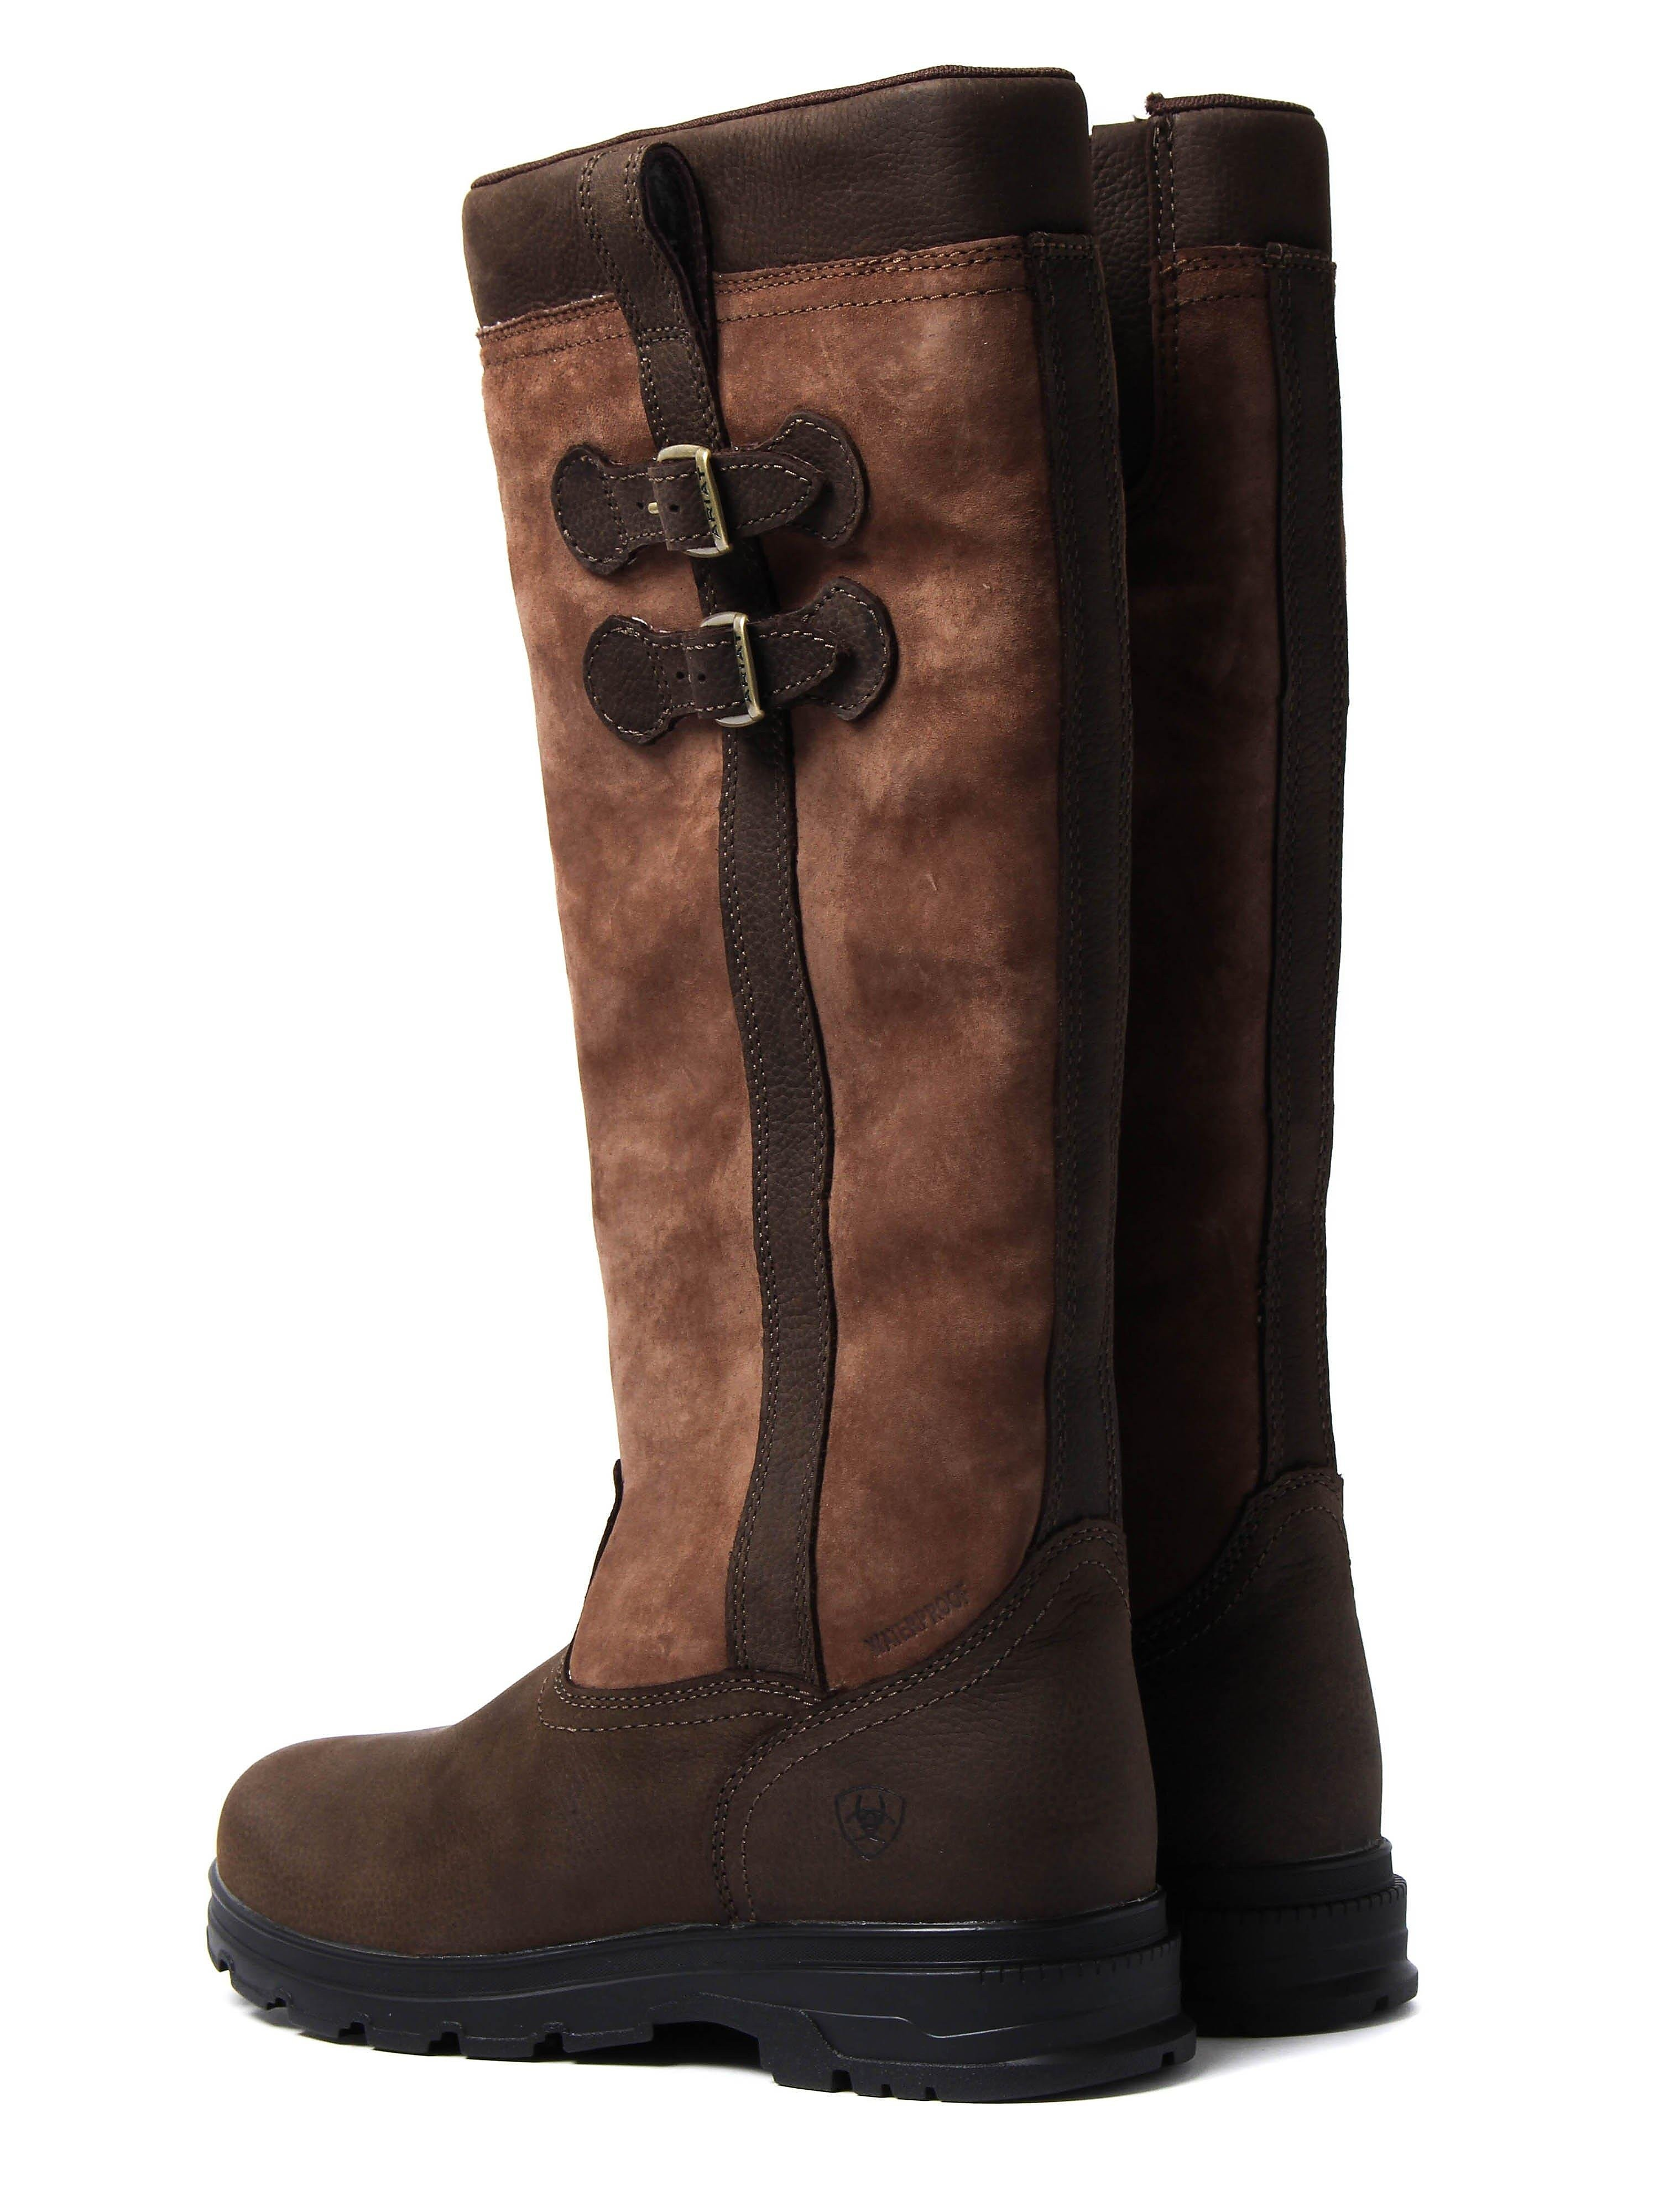 Ariat Women's Eskdale H2O Boots - Java